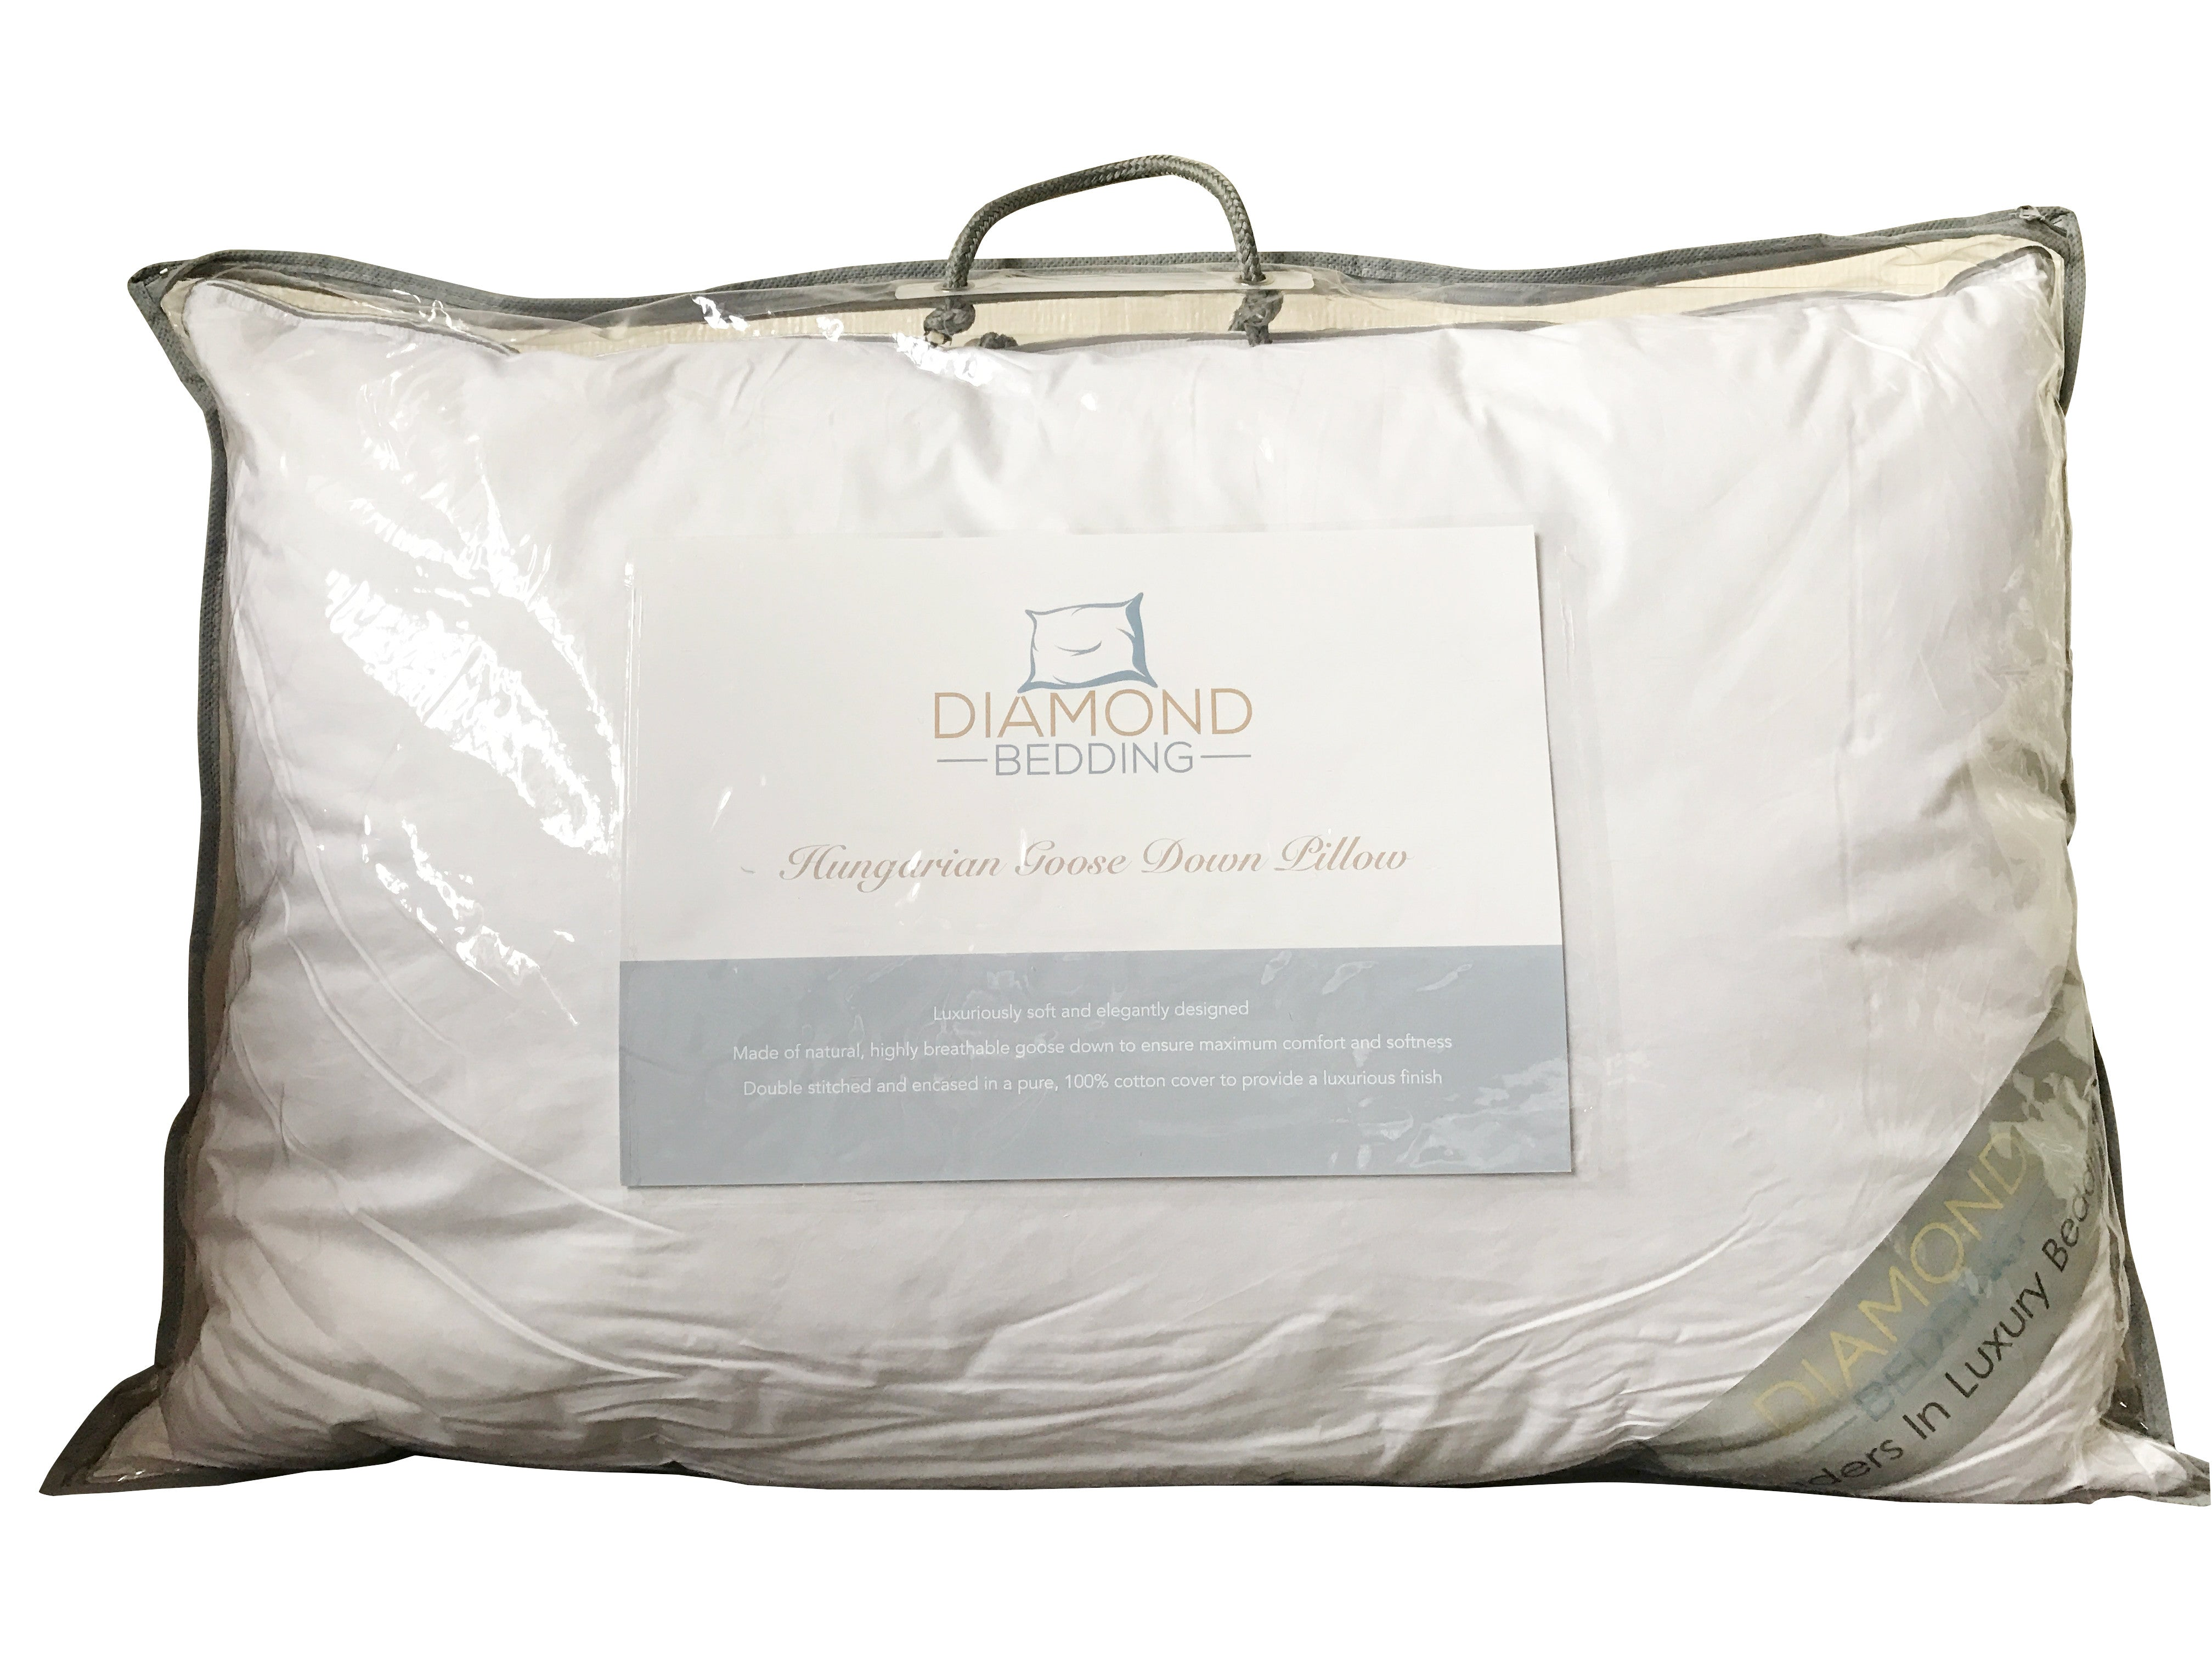 Hungarian Goose Down Pillow Diamond Bedding